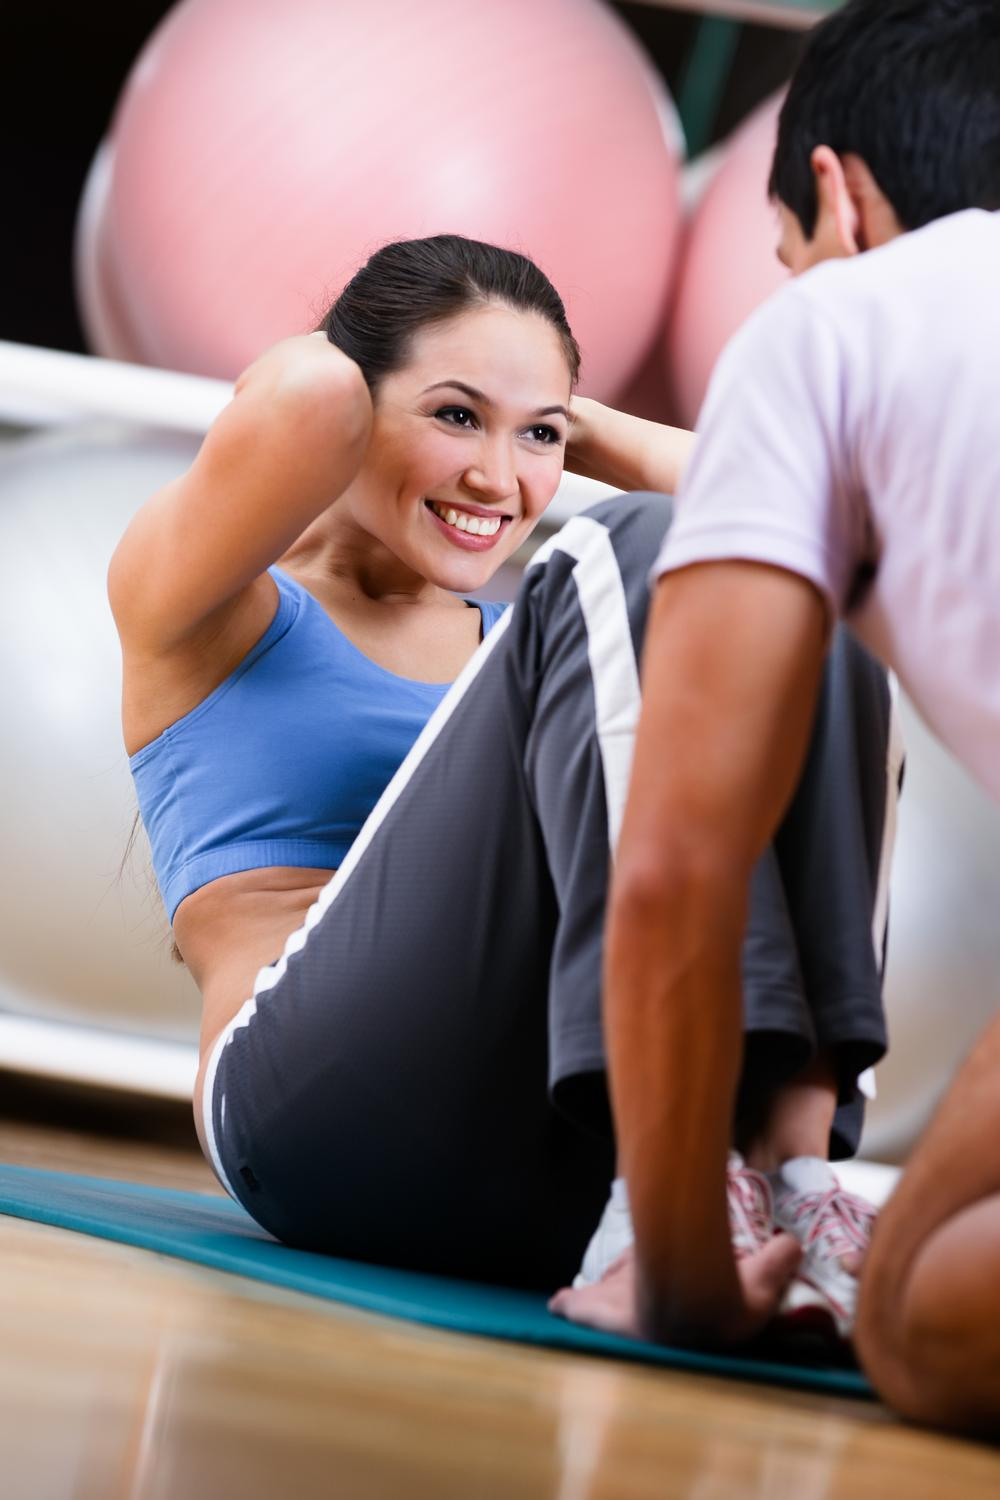 Interaction with both reception and fitness staff is highly valued by most health club members / photo: www.shutterstock.com